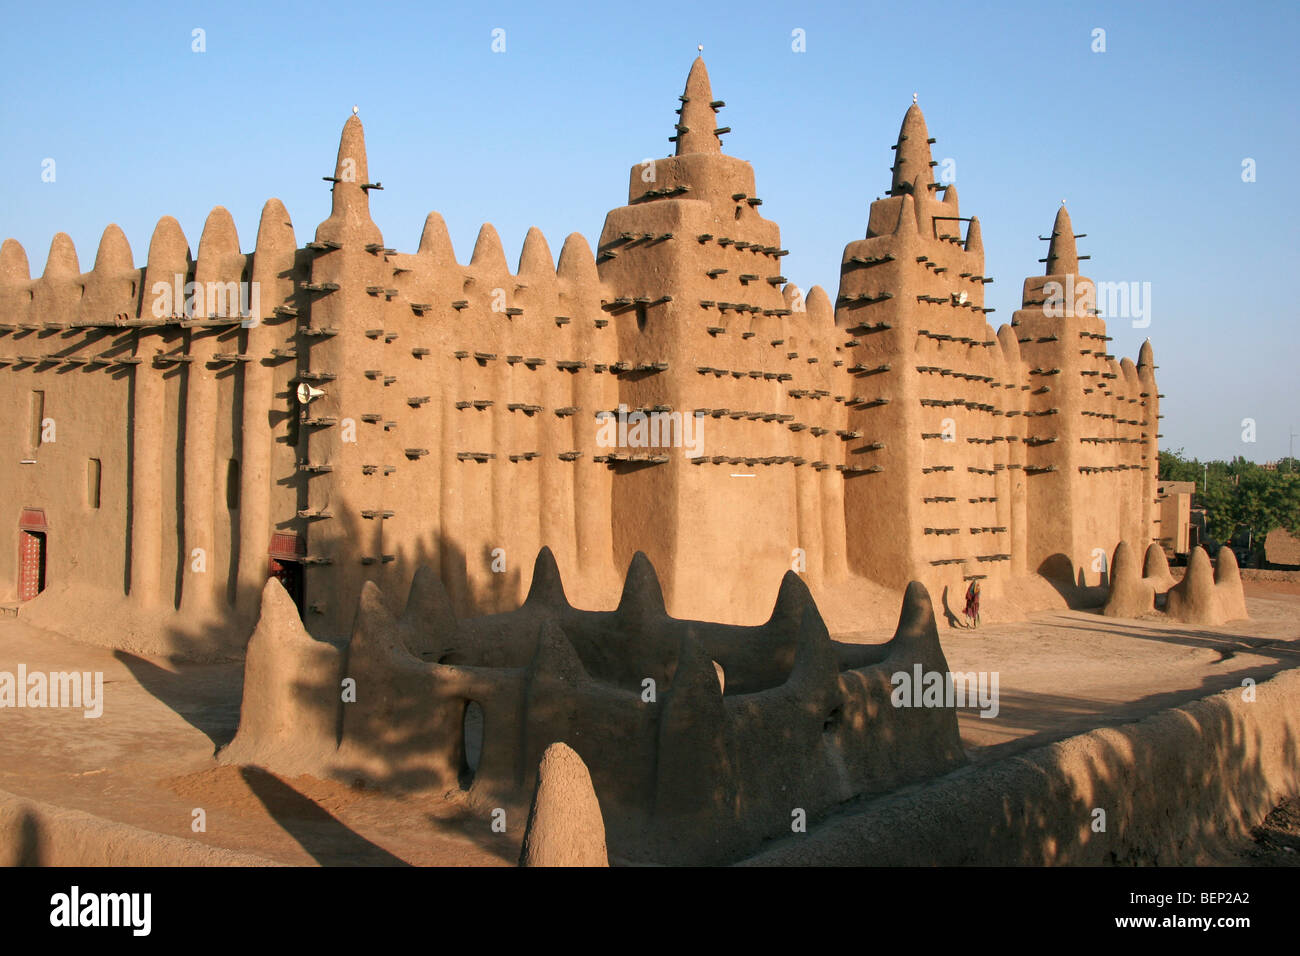 Great Mosque of Djenn largest mud brick or adobe building in the